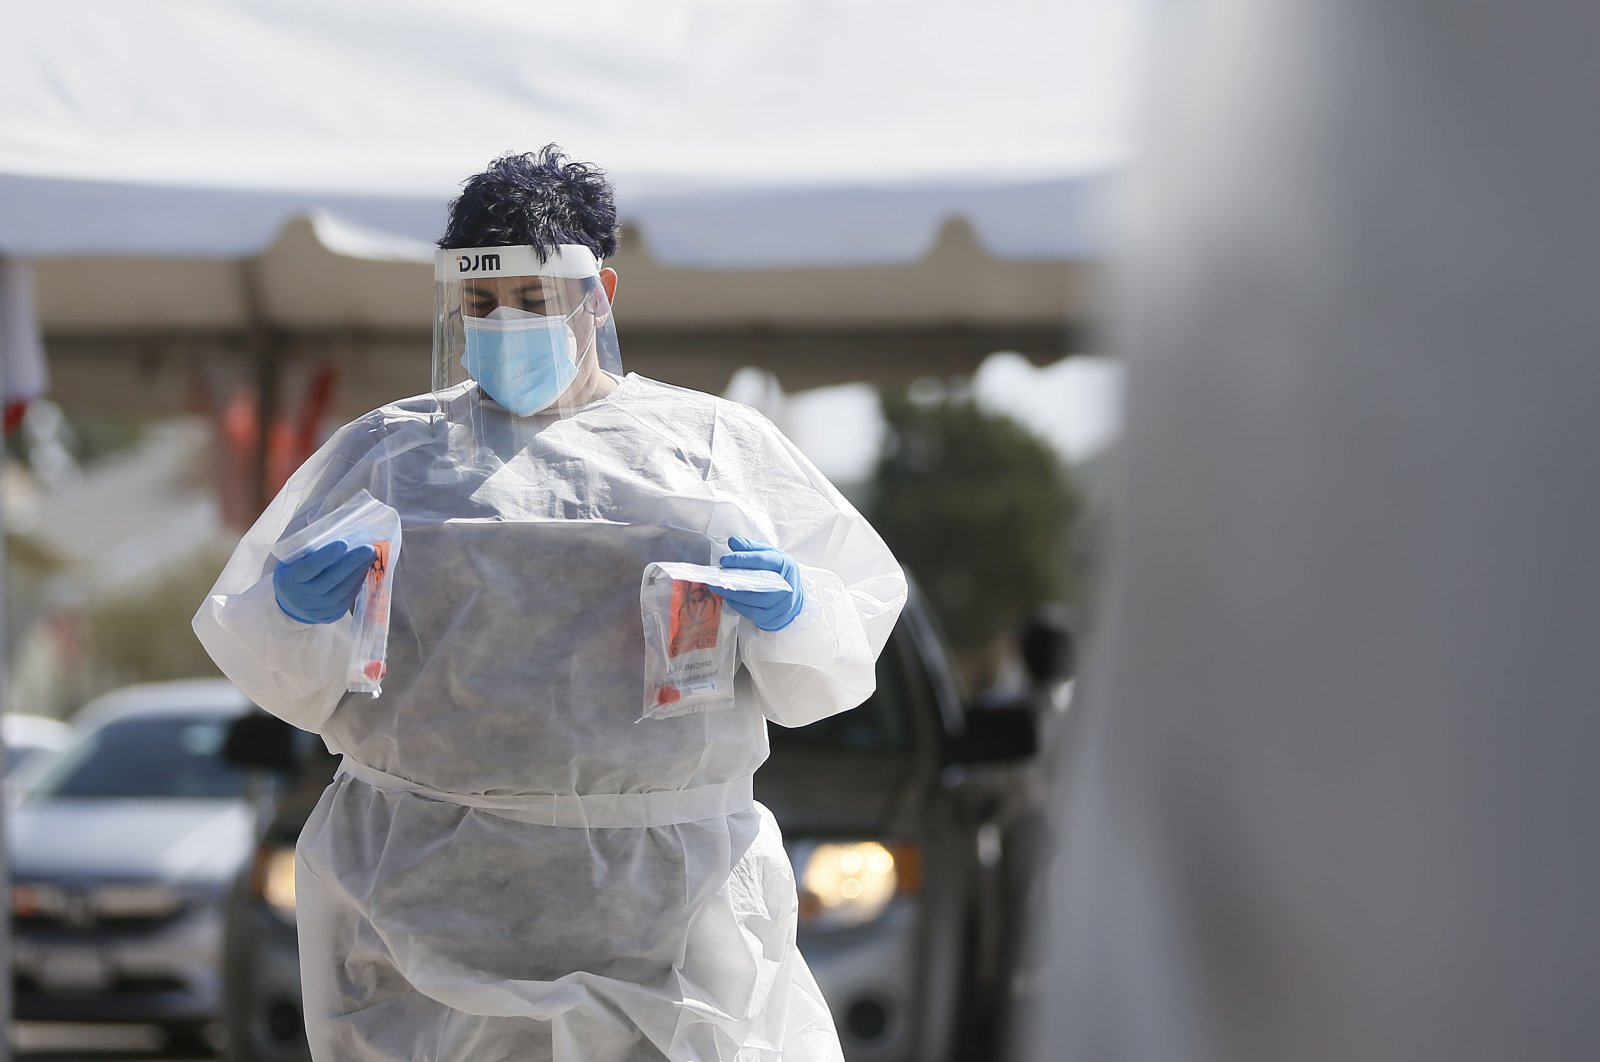 A medical worker takes COVID-19 swabs in for testing at the state drive-thru testing location UTEP Monday, Oct. 26, 2020 in El Paso, Texas. (The El Paso Times via AP)